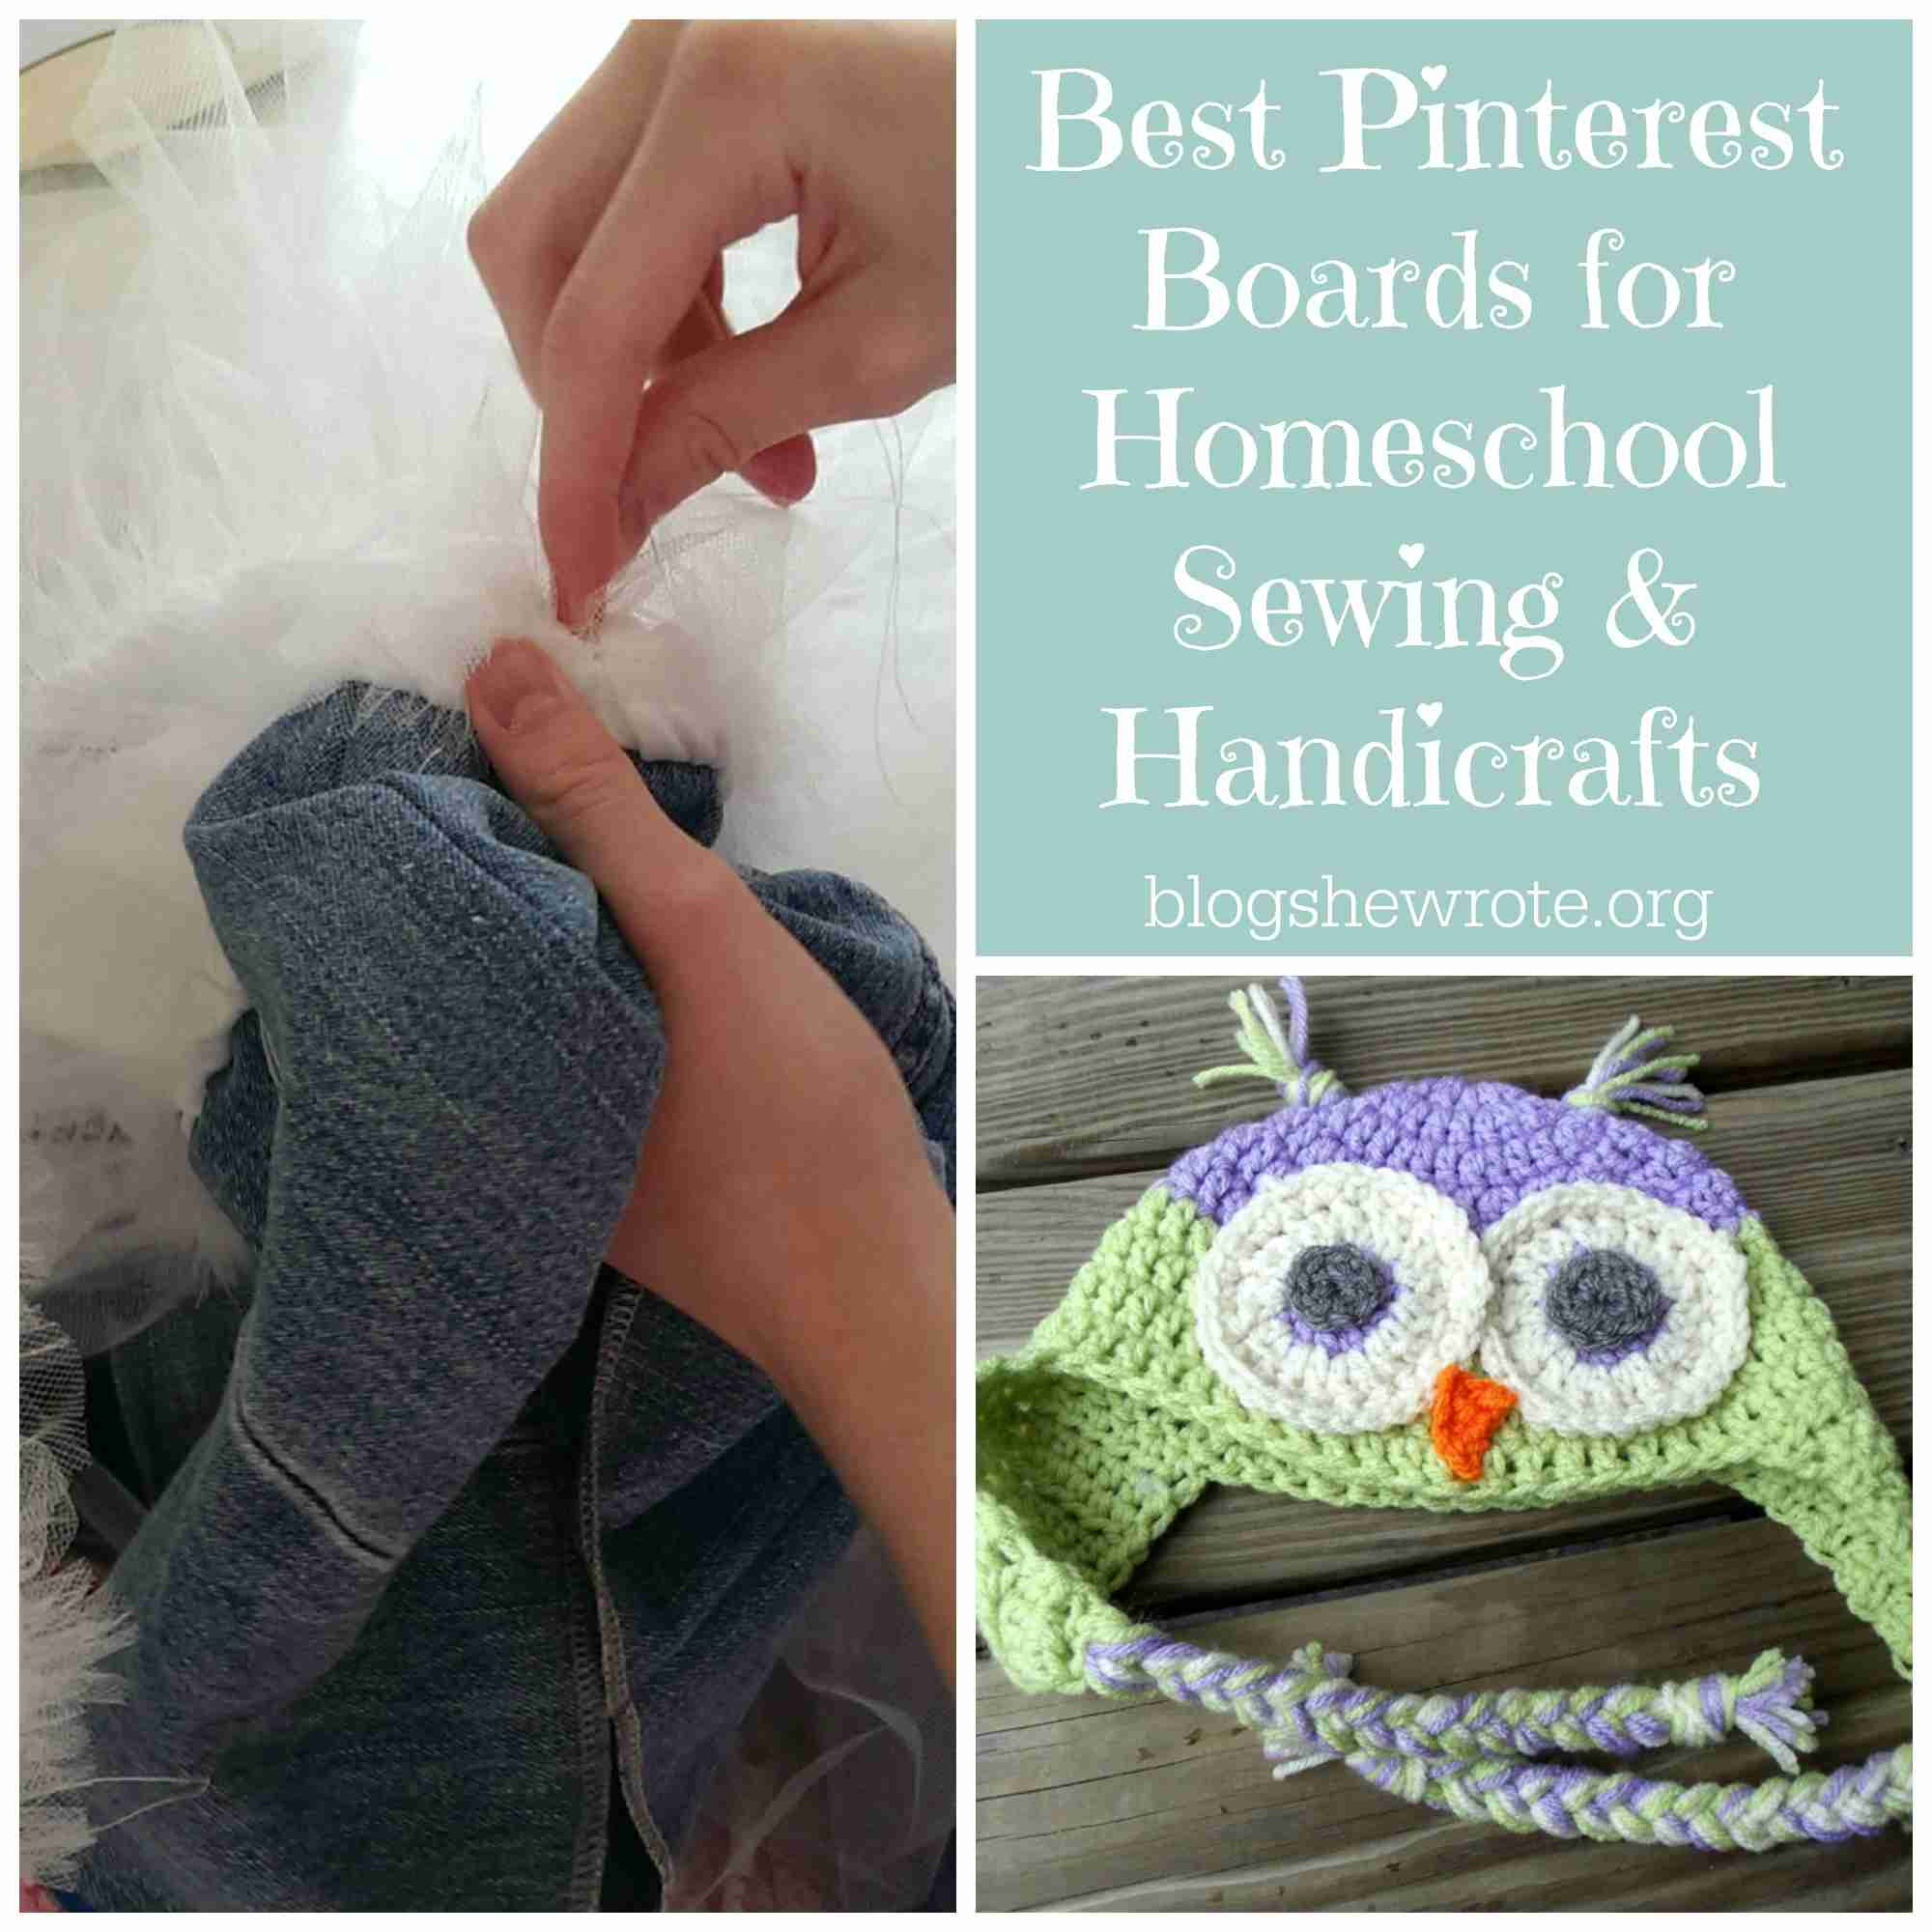 Blog, She Wrote: Best Pinterest Boards for Homeschool Sewing & Handicrafts